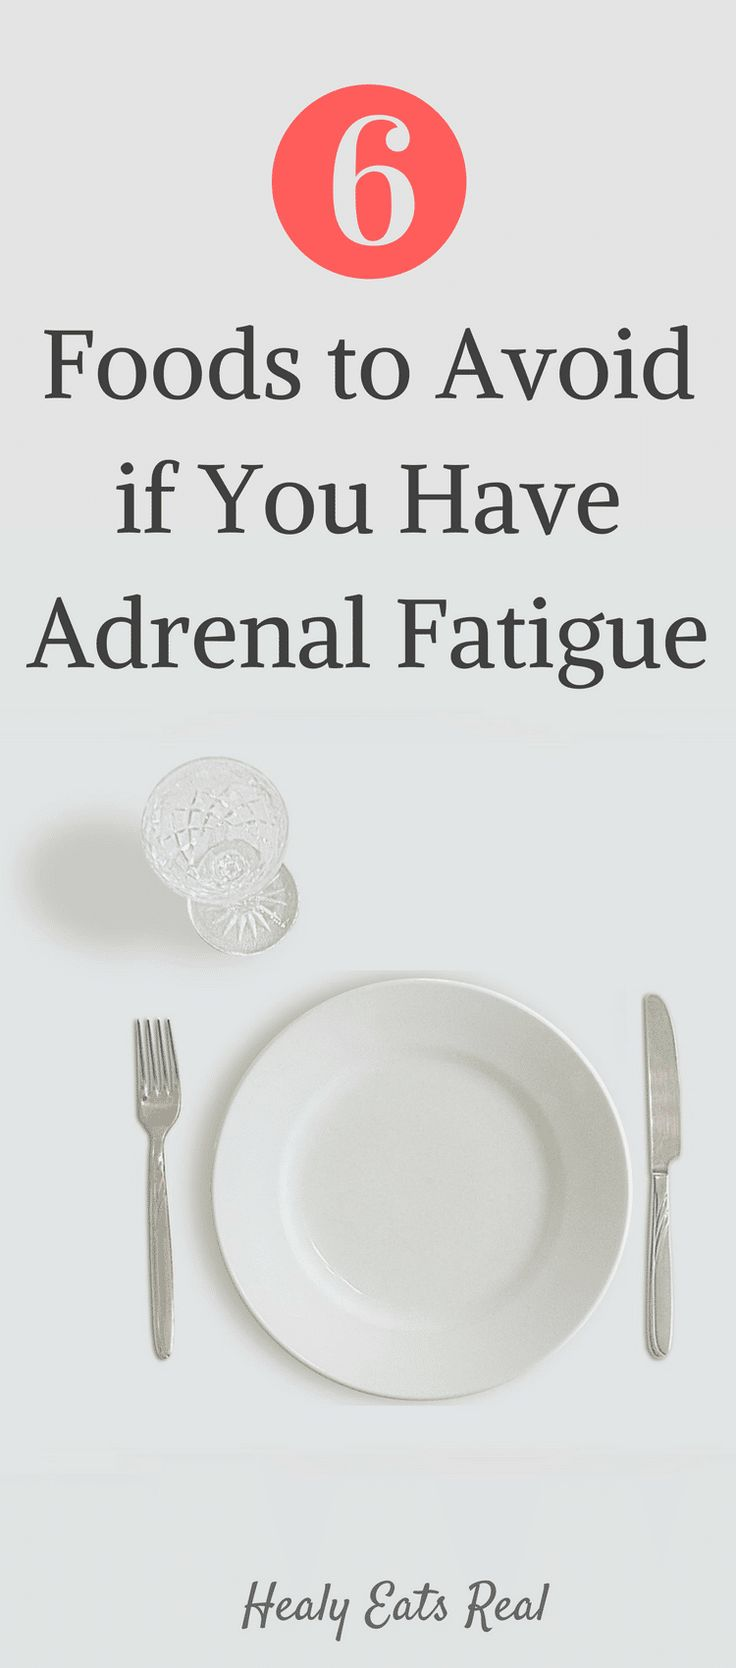 6 Foods to Avoid on Any Adrenal Fatigue Diet! If you have adrenal fatigue, do your hormones and metabolism a favor and avoid these foods for full recovery!